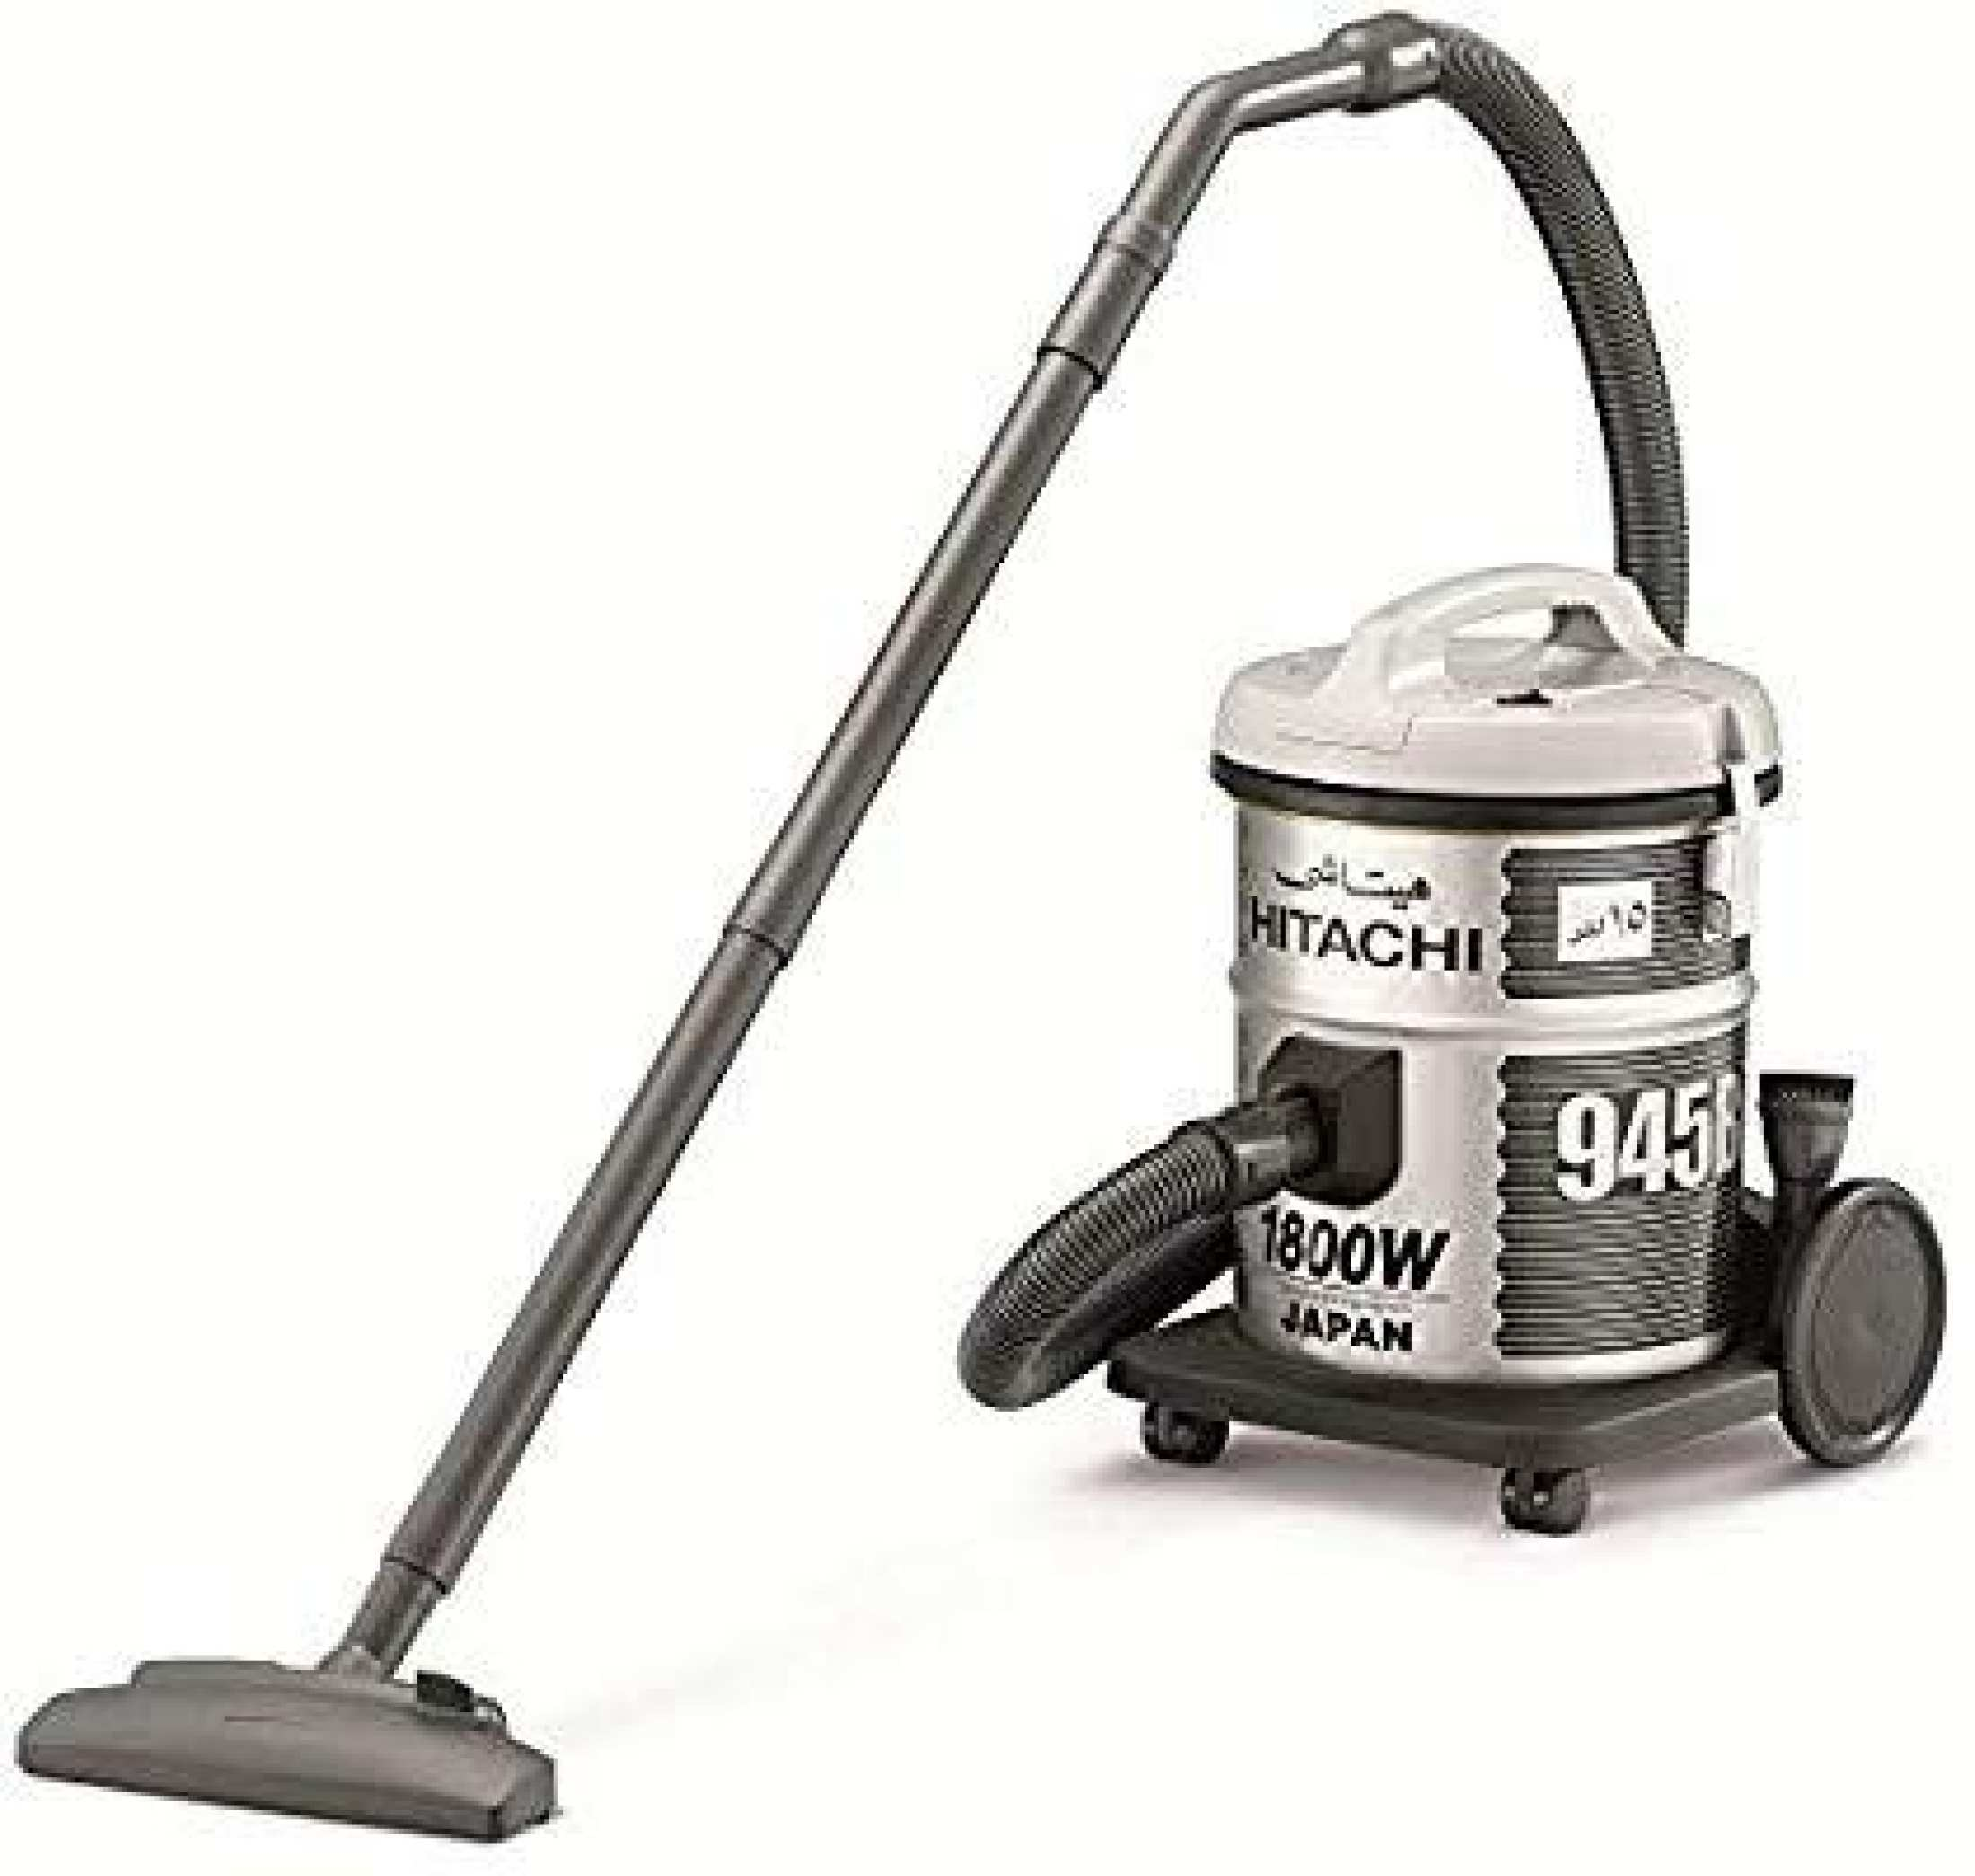 Hitachi 1800W Bag Type Vacuum Cleaner Platinum Grey Cv945(Pg)